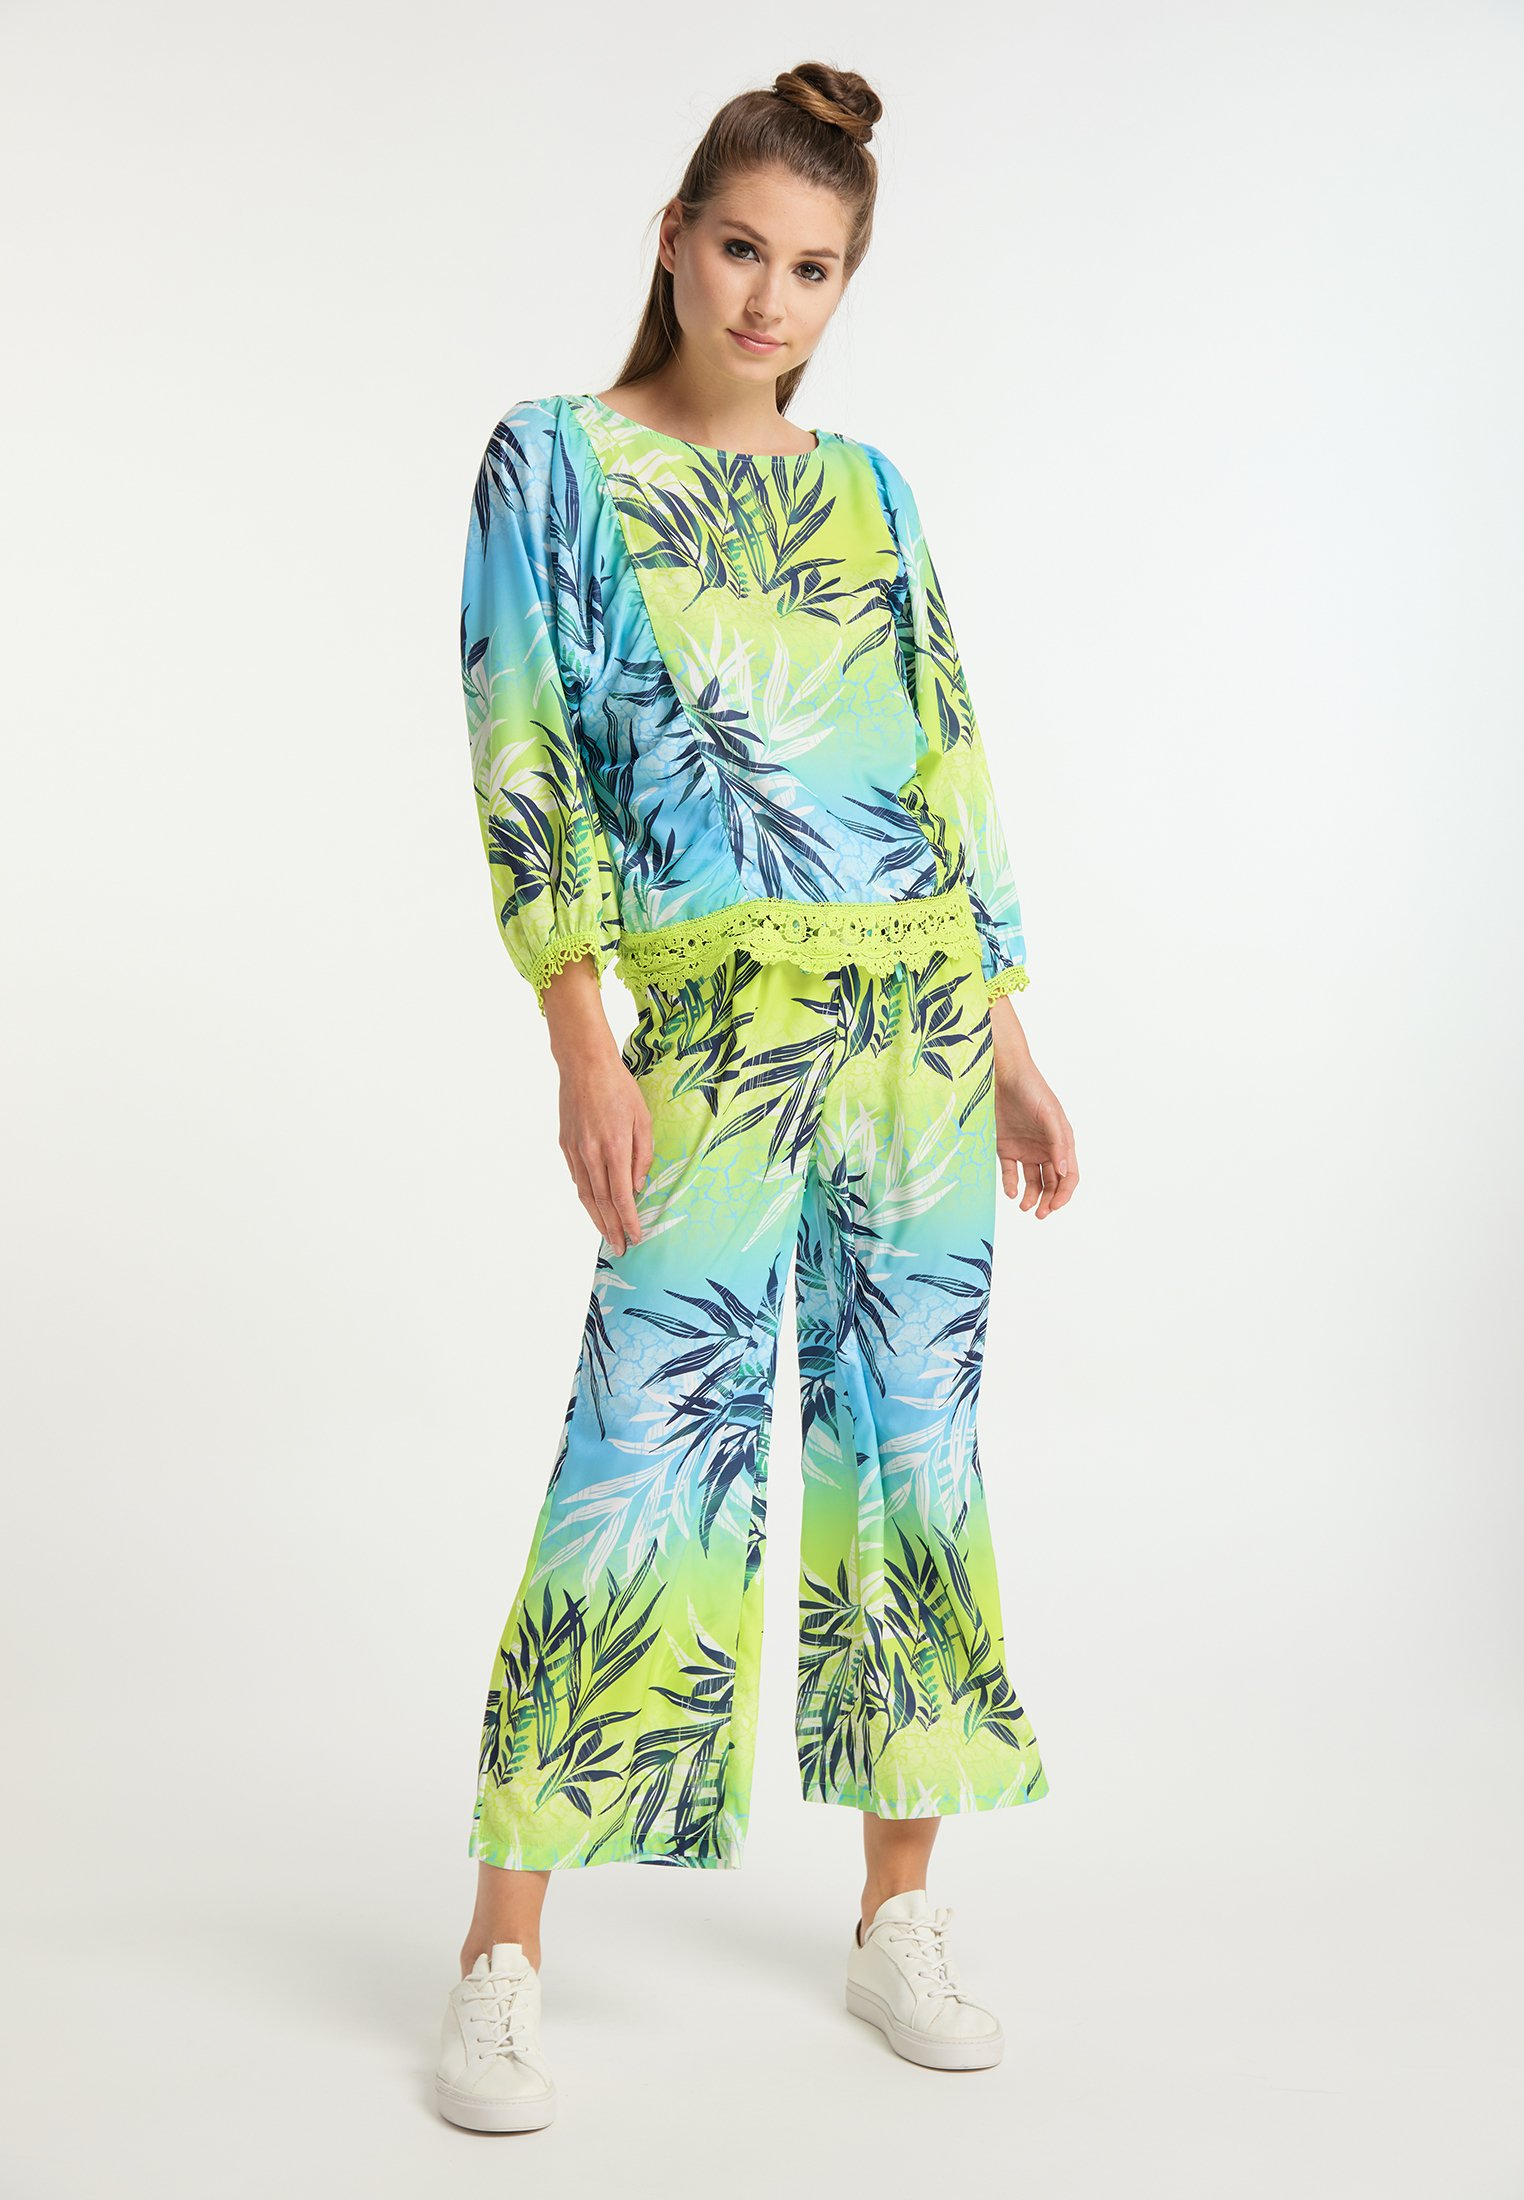 Popular And Cheap Women's Clothing myMo Blouse tropical print wXDetmd5R